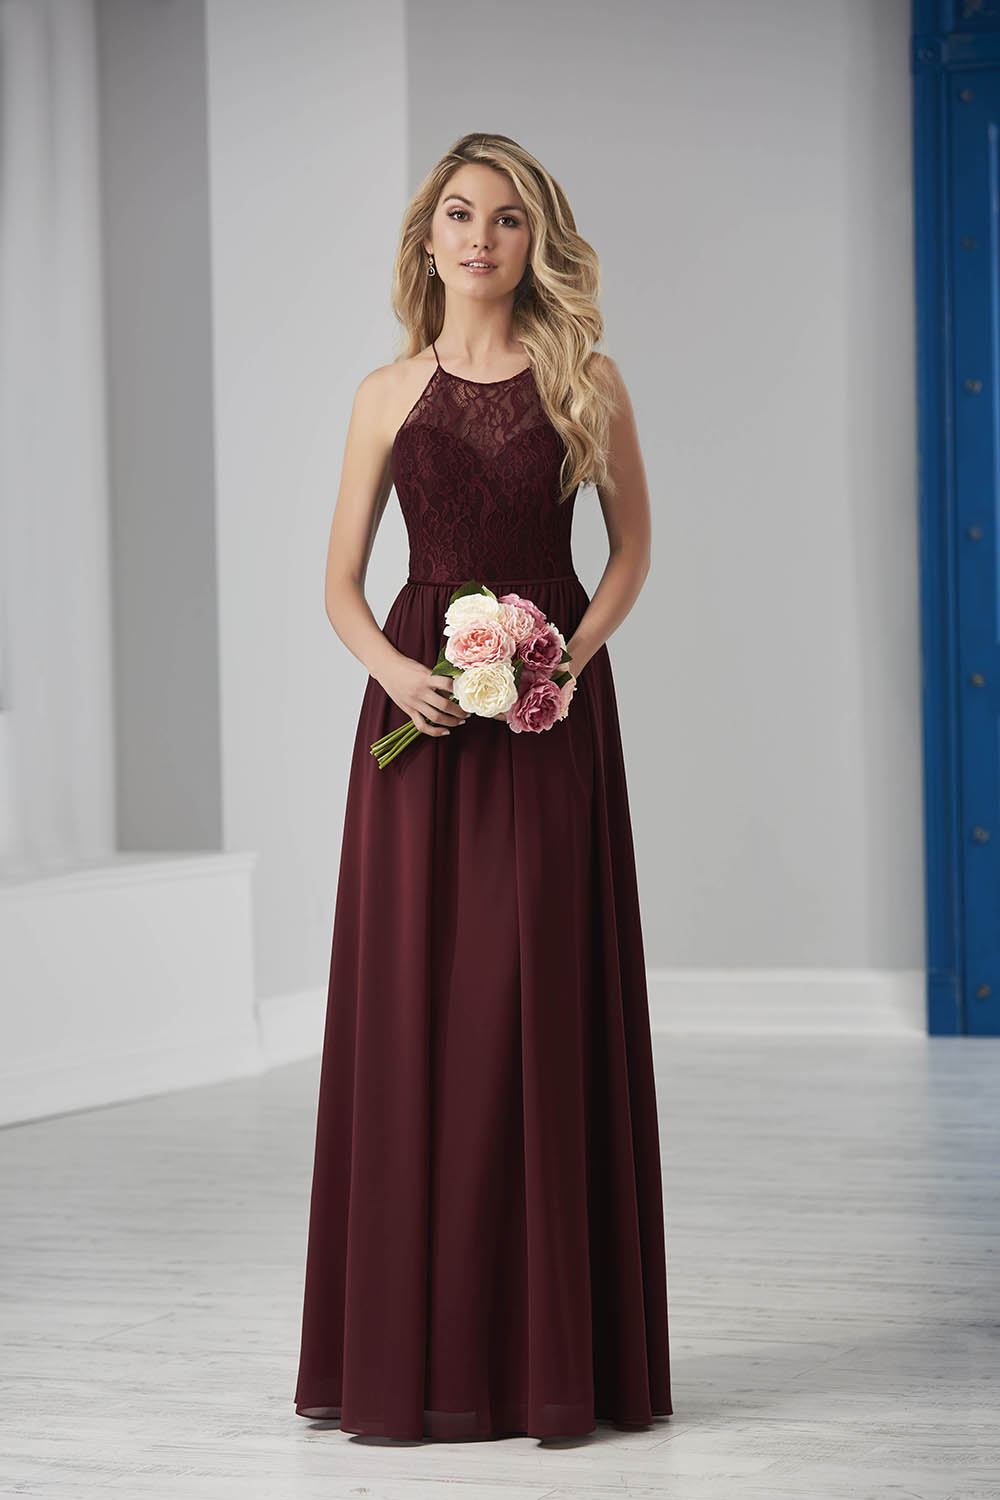 bridesmaid-dresses-jacquelin-bridals-canada-26196